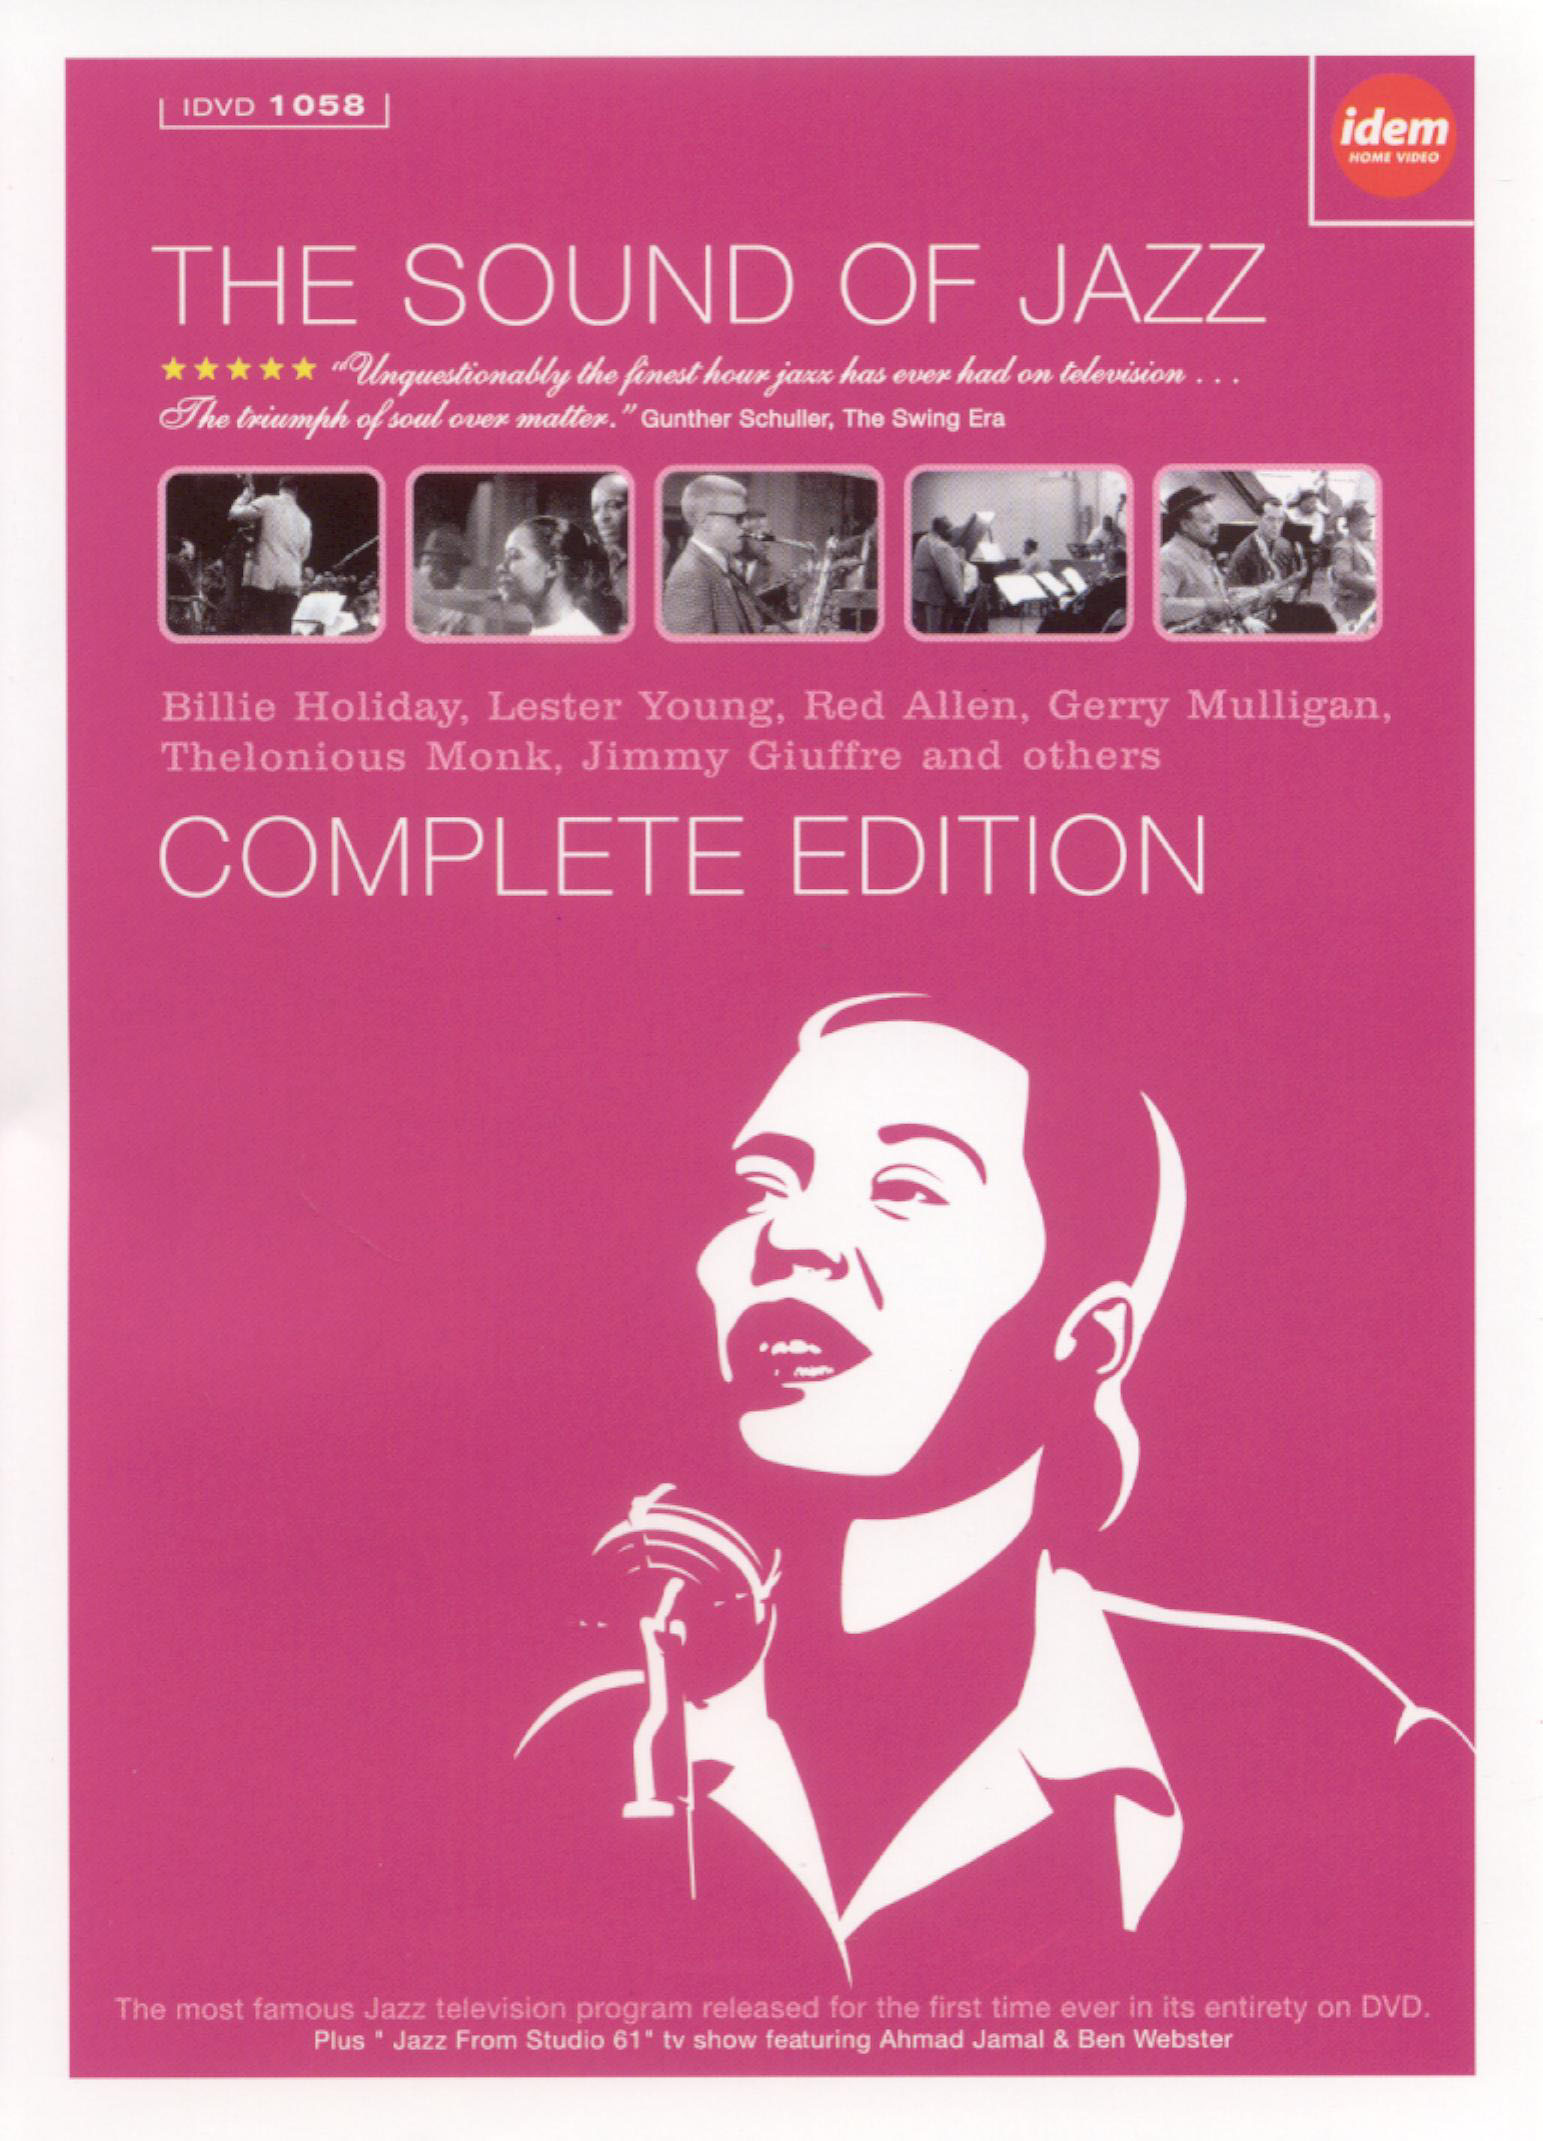 The Sound of Jazz: Complete Edition